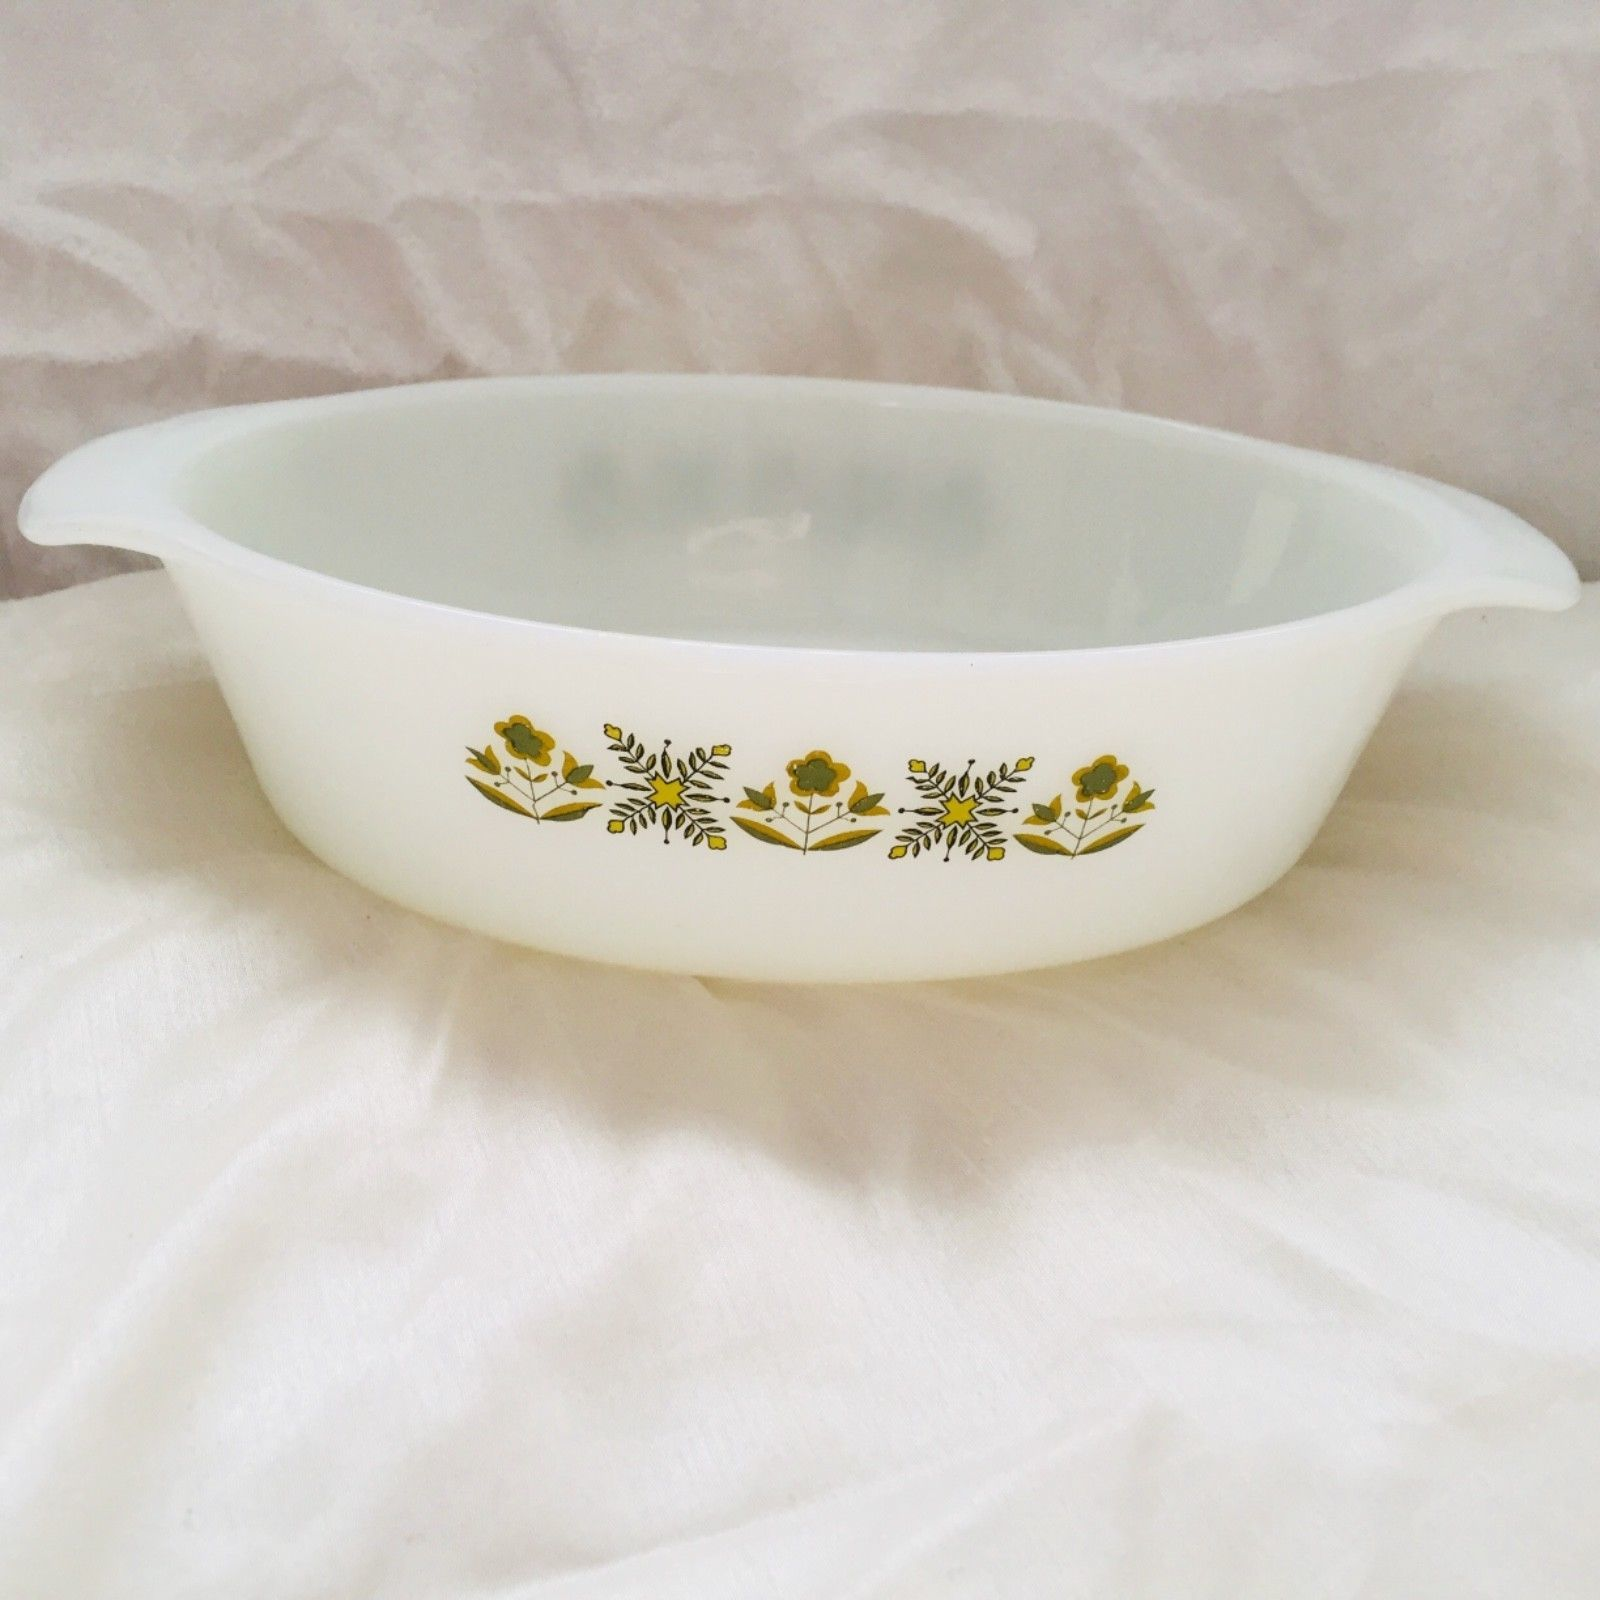 Primary image for Hocking Fire King Milk Glass Casserole Meadow Green 1 Quart Oval Dish Vintage